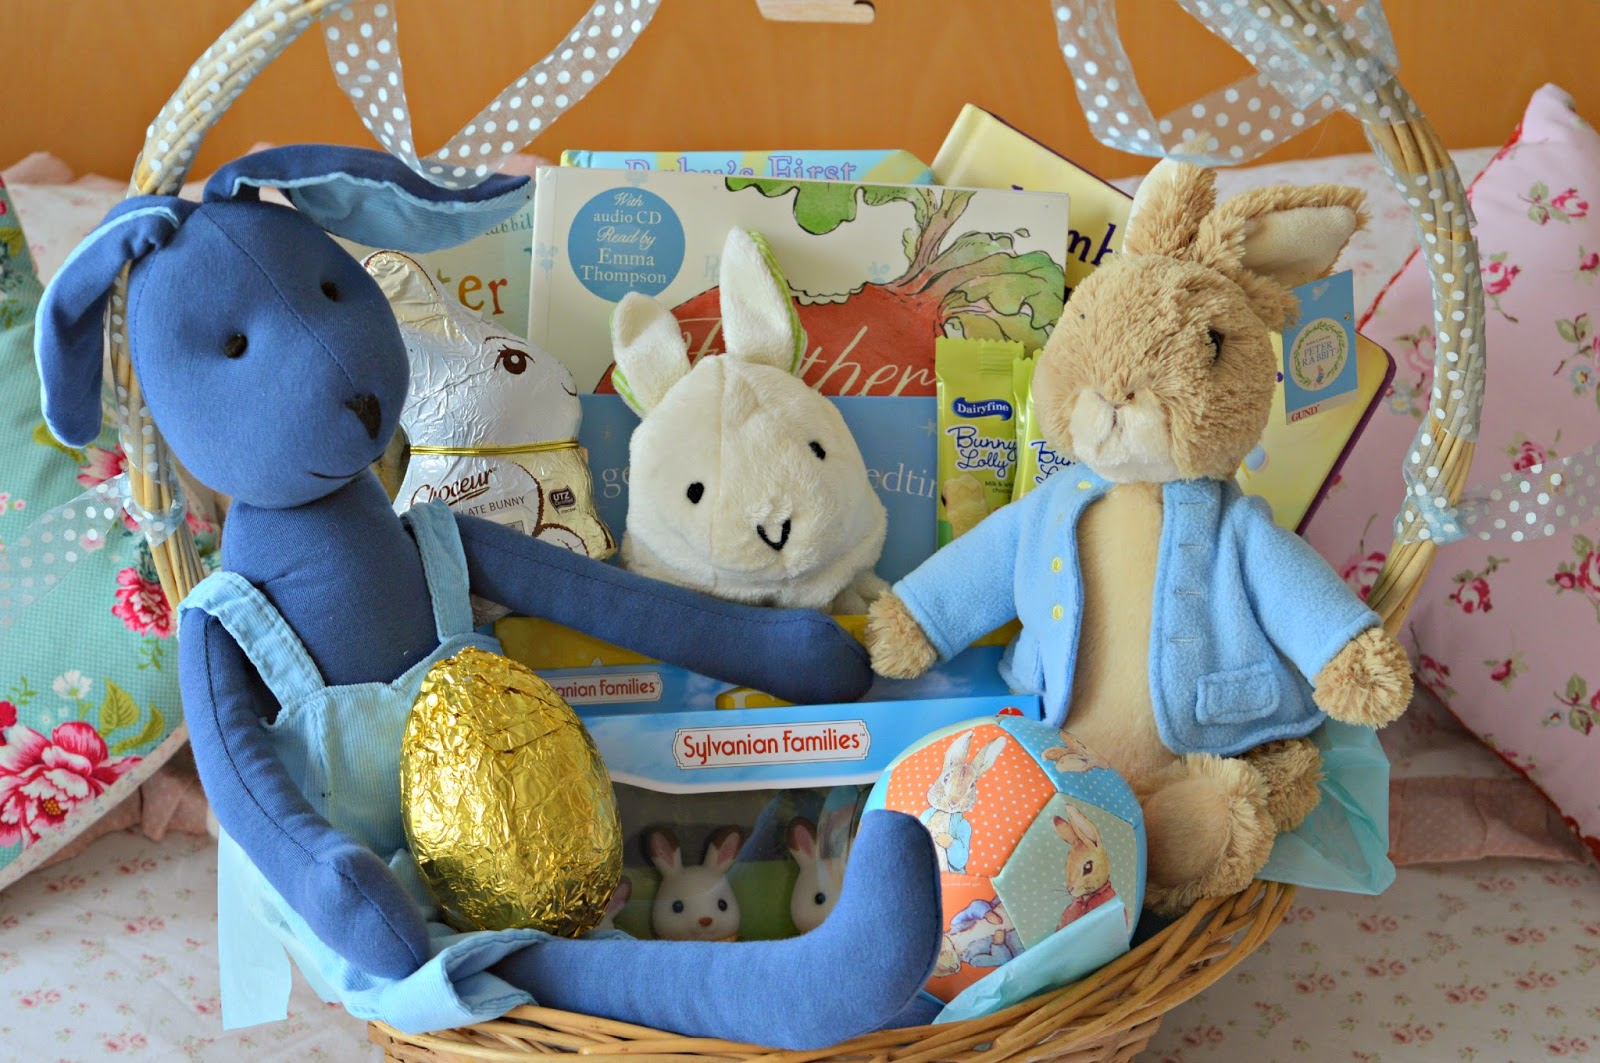 Tyler lees easter basket peter rabbit books bunnies this basket was relatively cheap for me i think i only spent about 20 of my own money buying things for it as i had vouchers and credit available for the negle